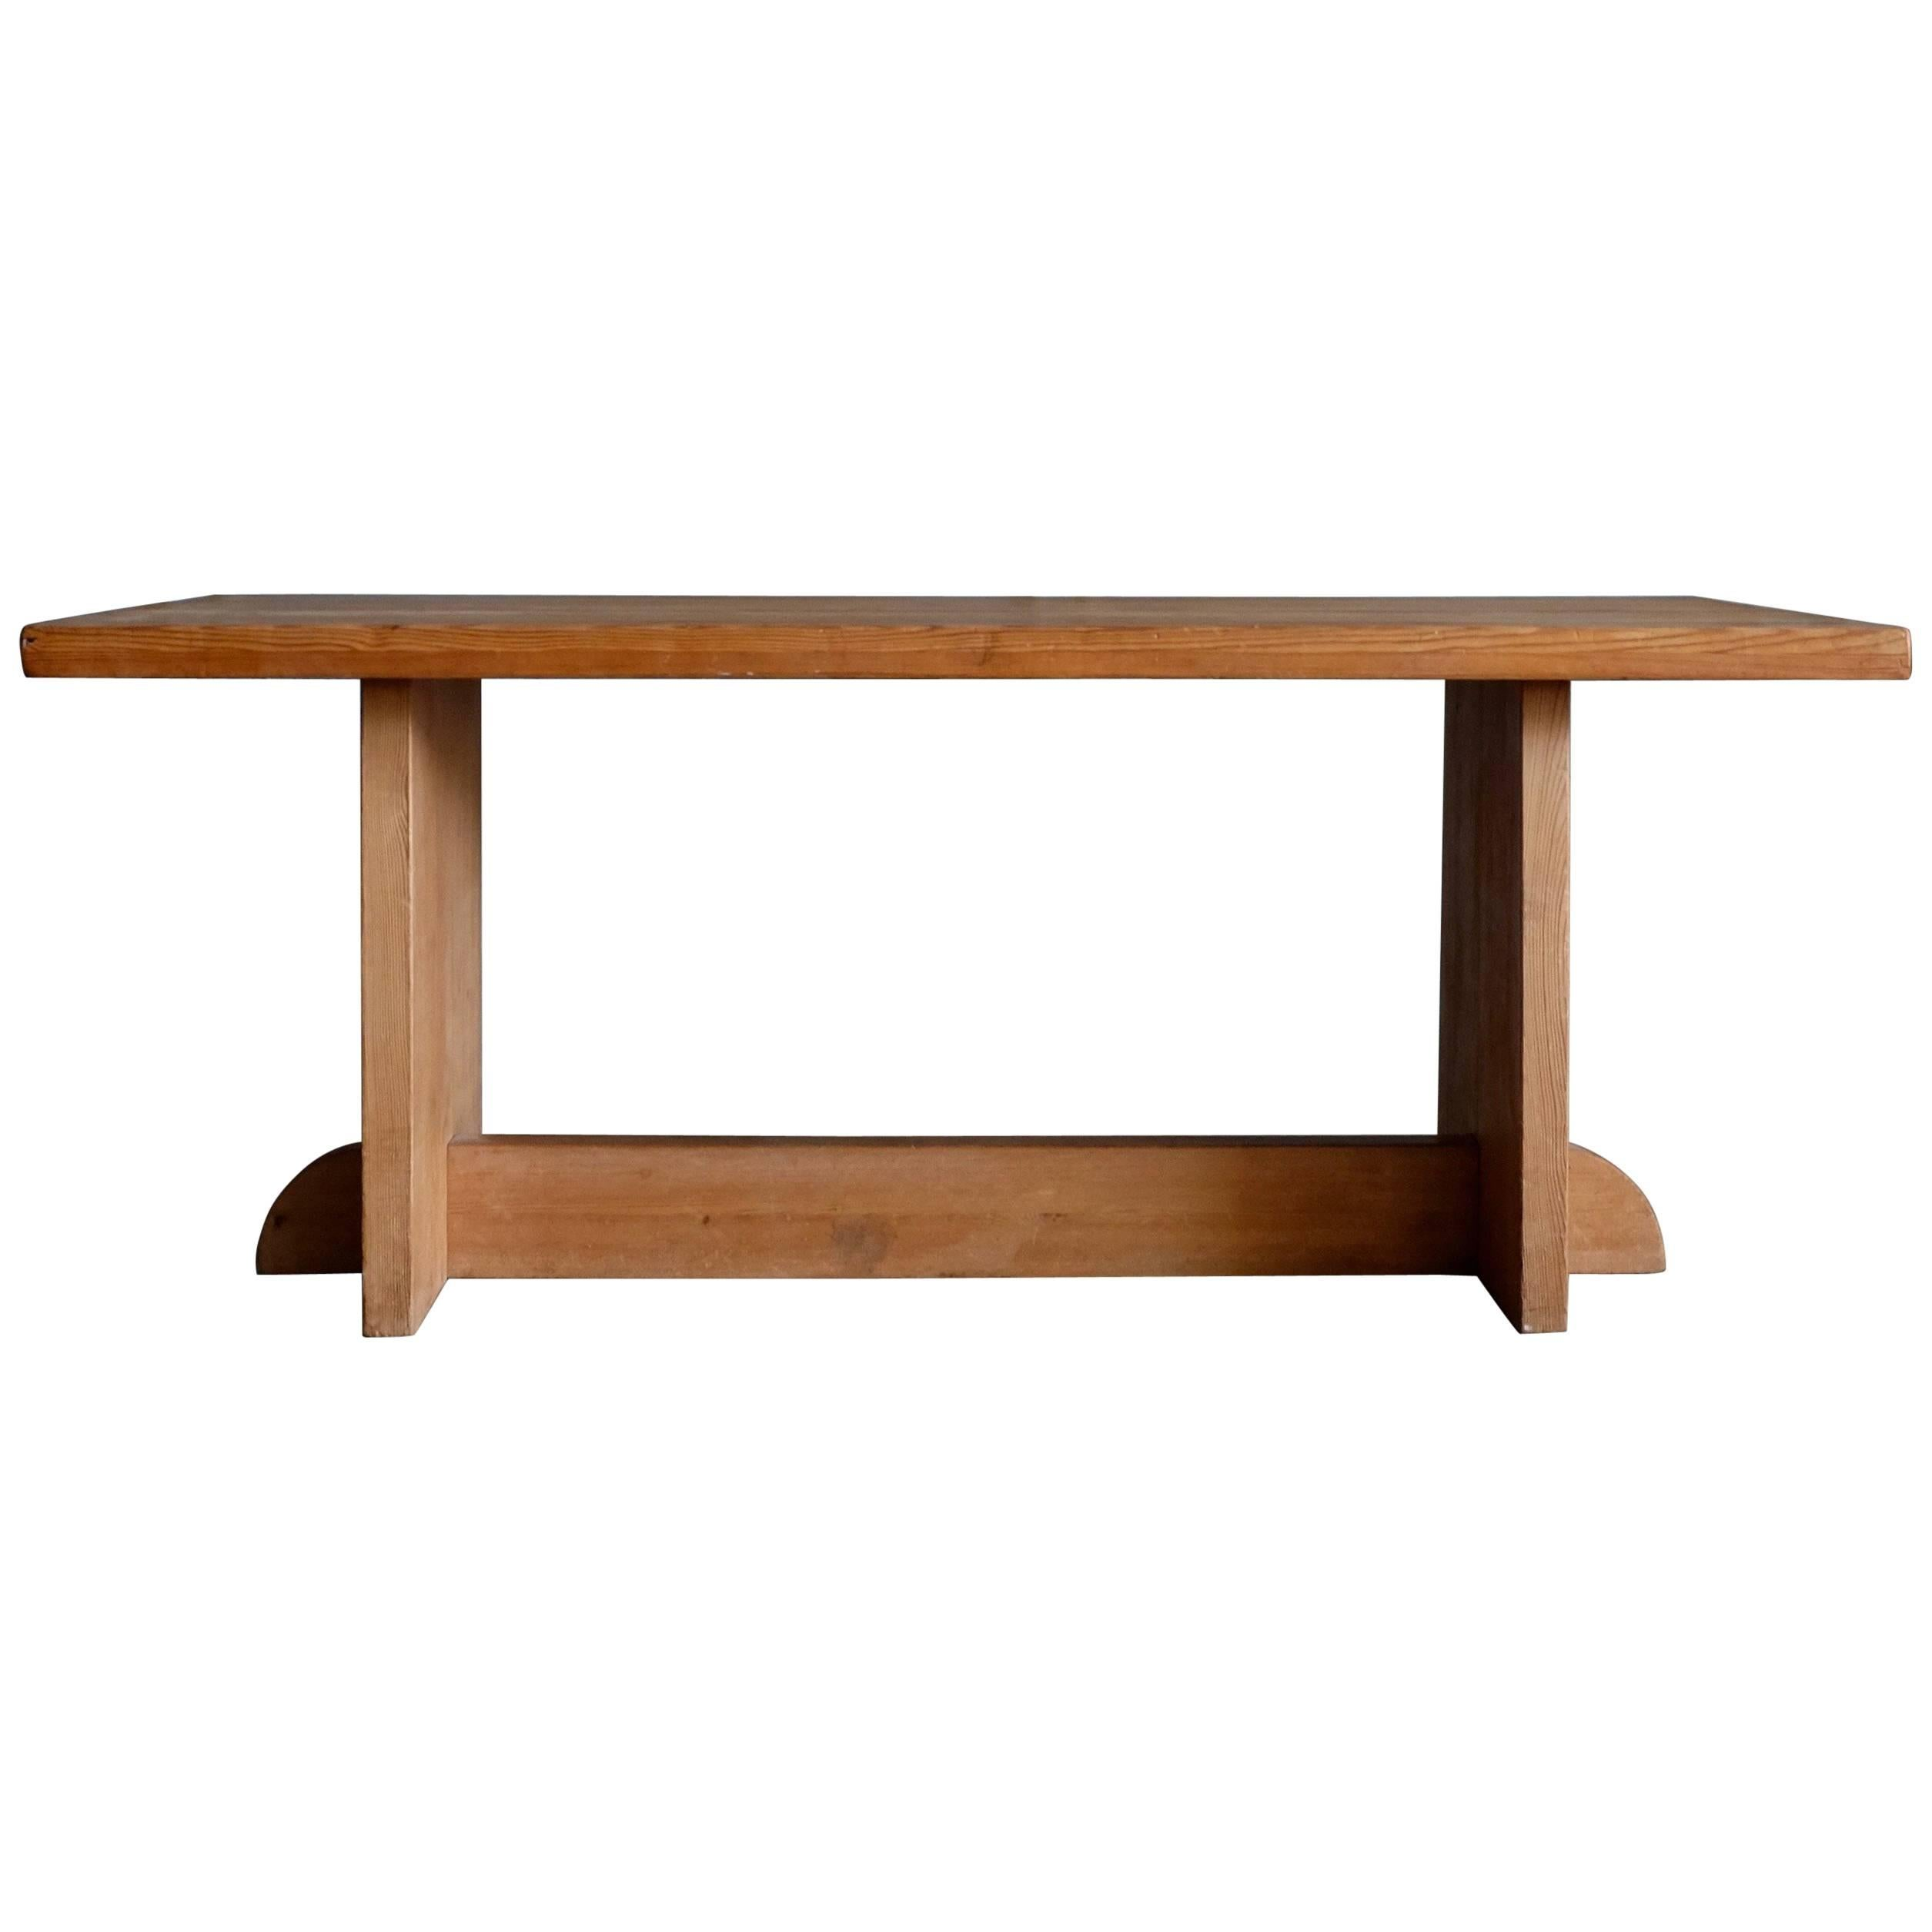 "Axel Einar Hjorth ""Lovö"" Table by Nordiska Kompaniet, 1930s"